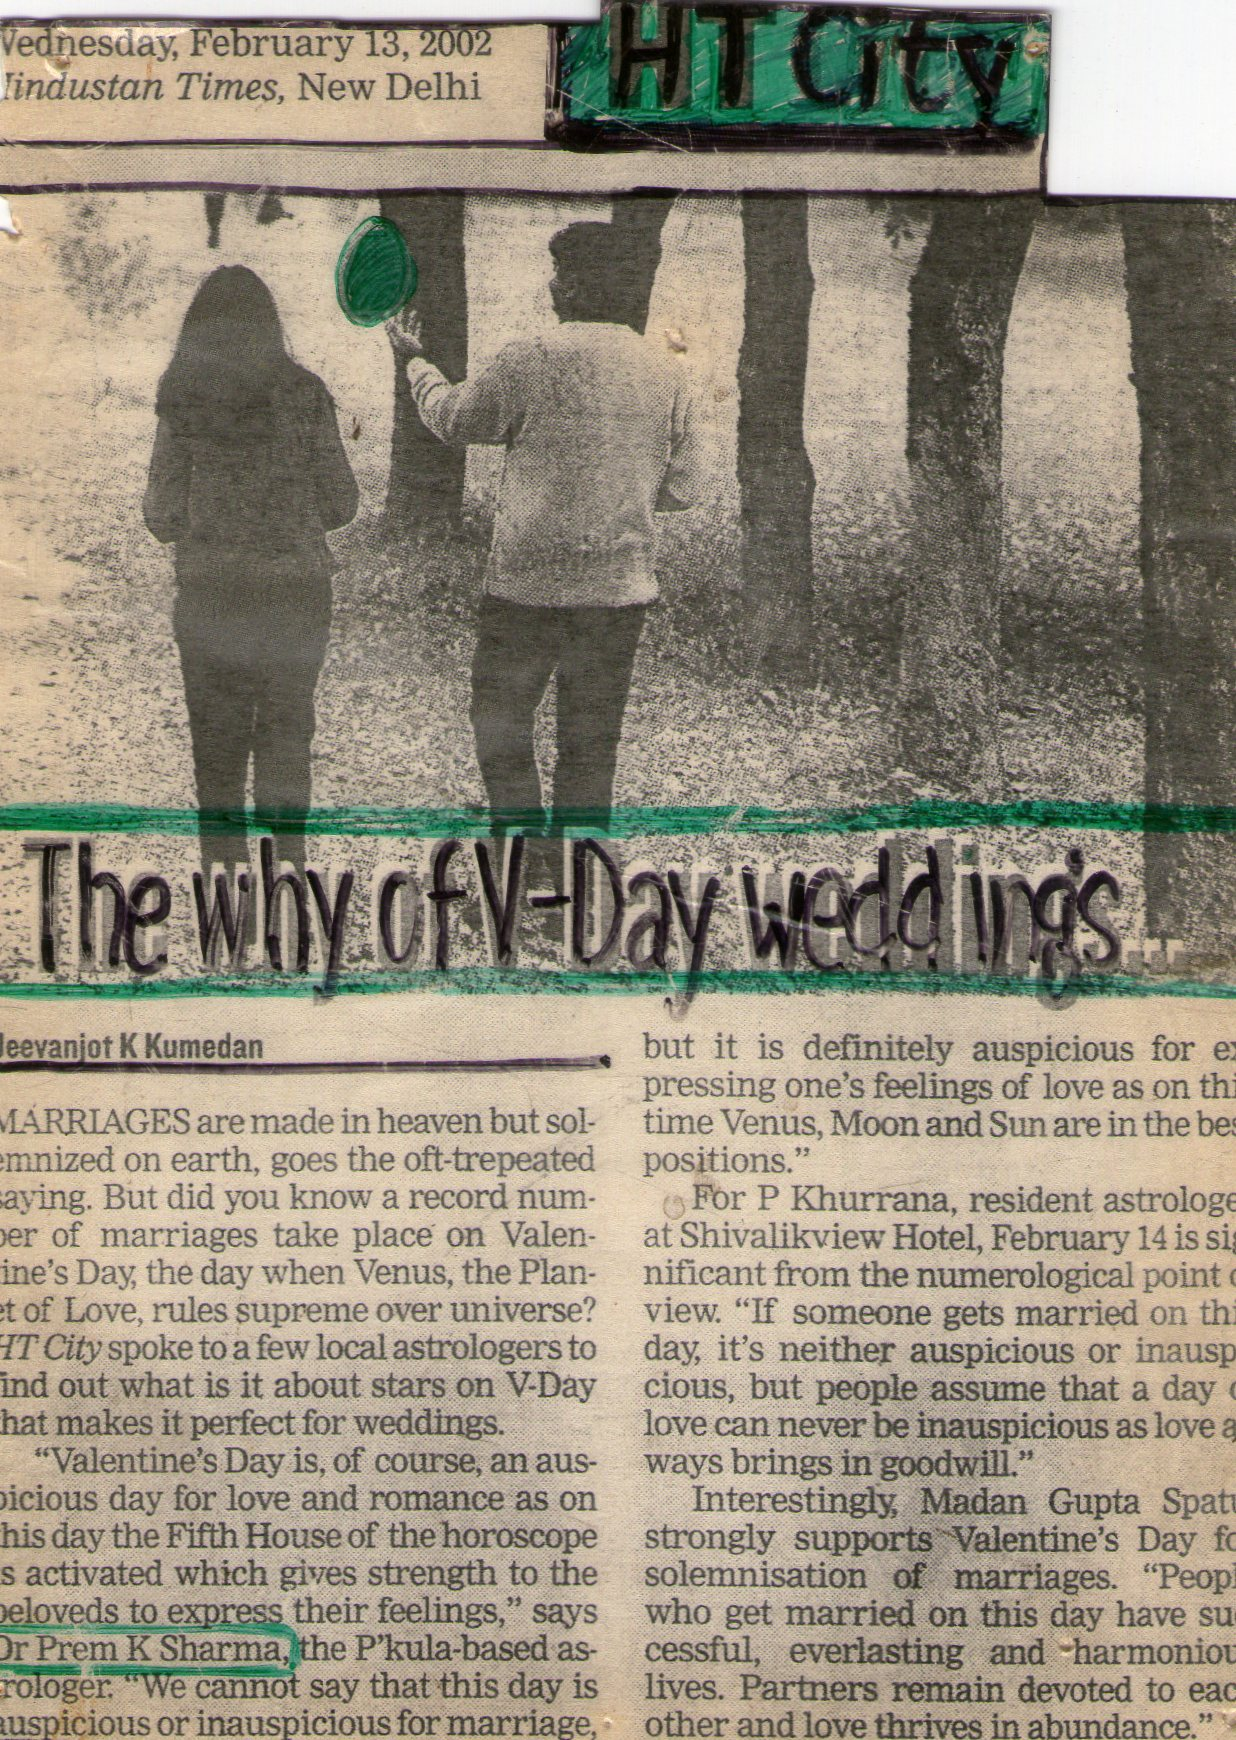 The why of V-Day Weddings